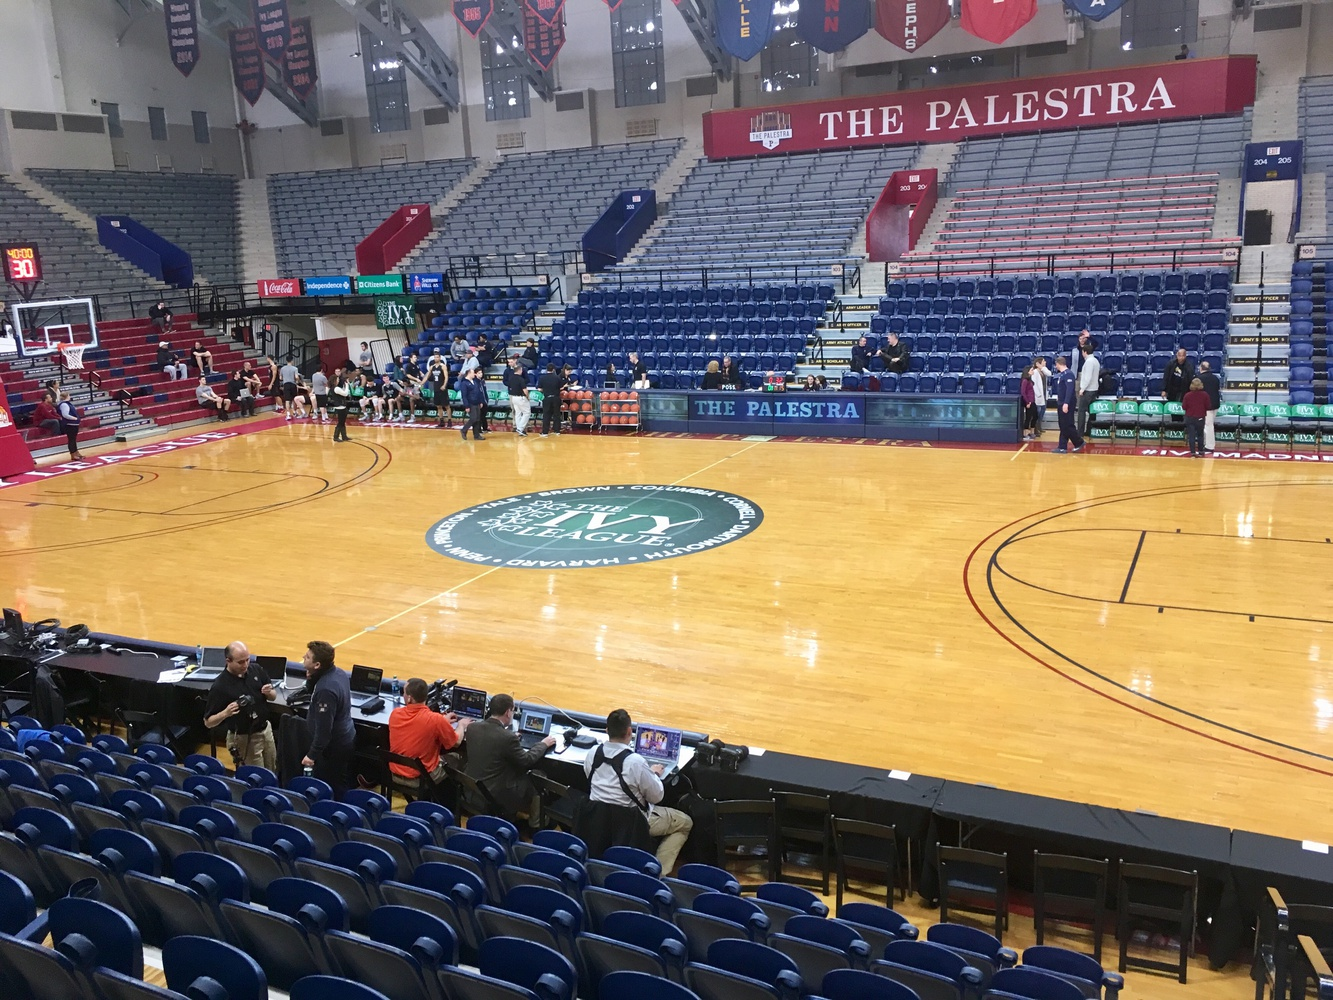 The Ivy League has rebranded the Palestra, traditionally Penn's home gym, to feel more like a neutral site for the Ivy League Tournament.